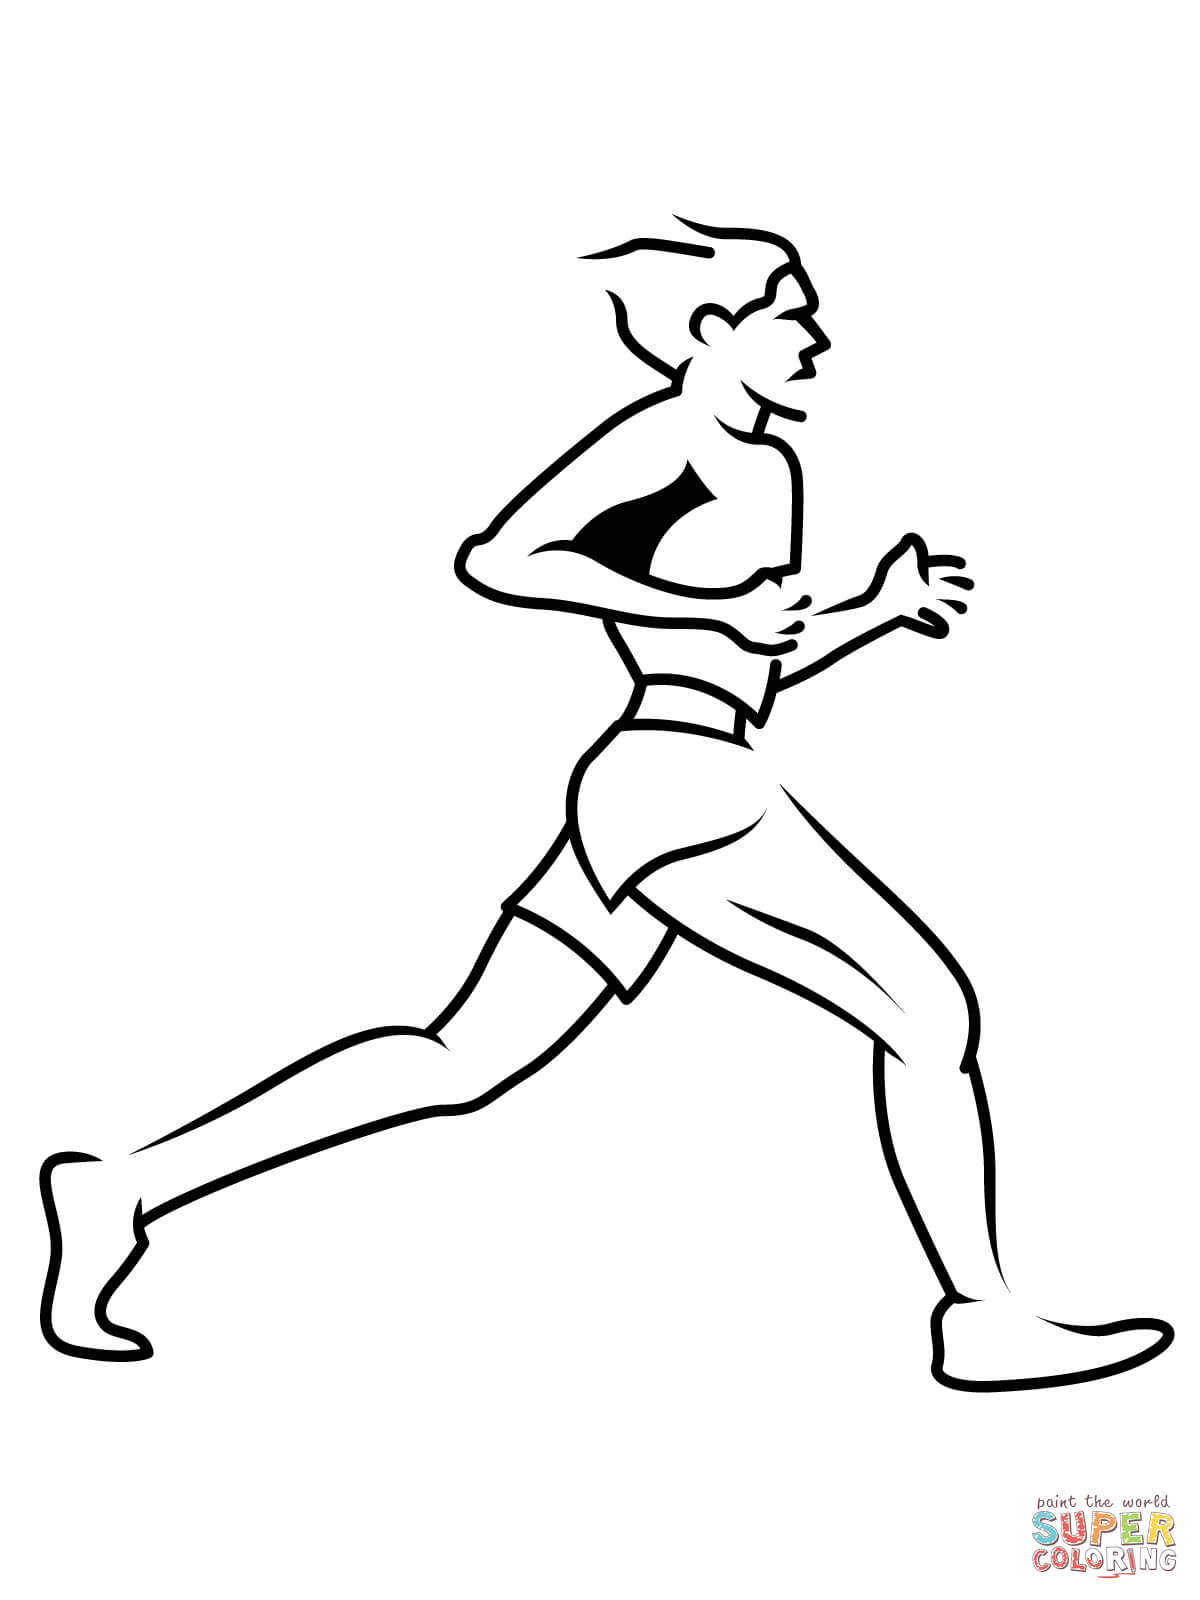 Short Runner Coloring Page